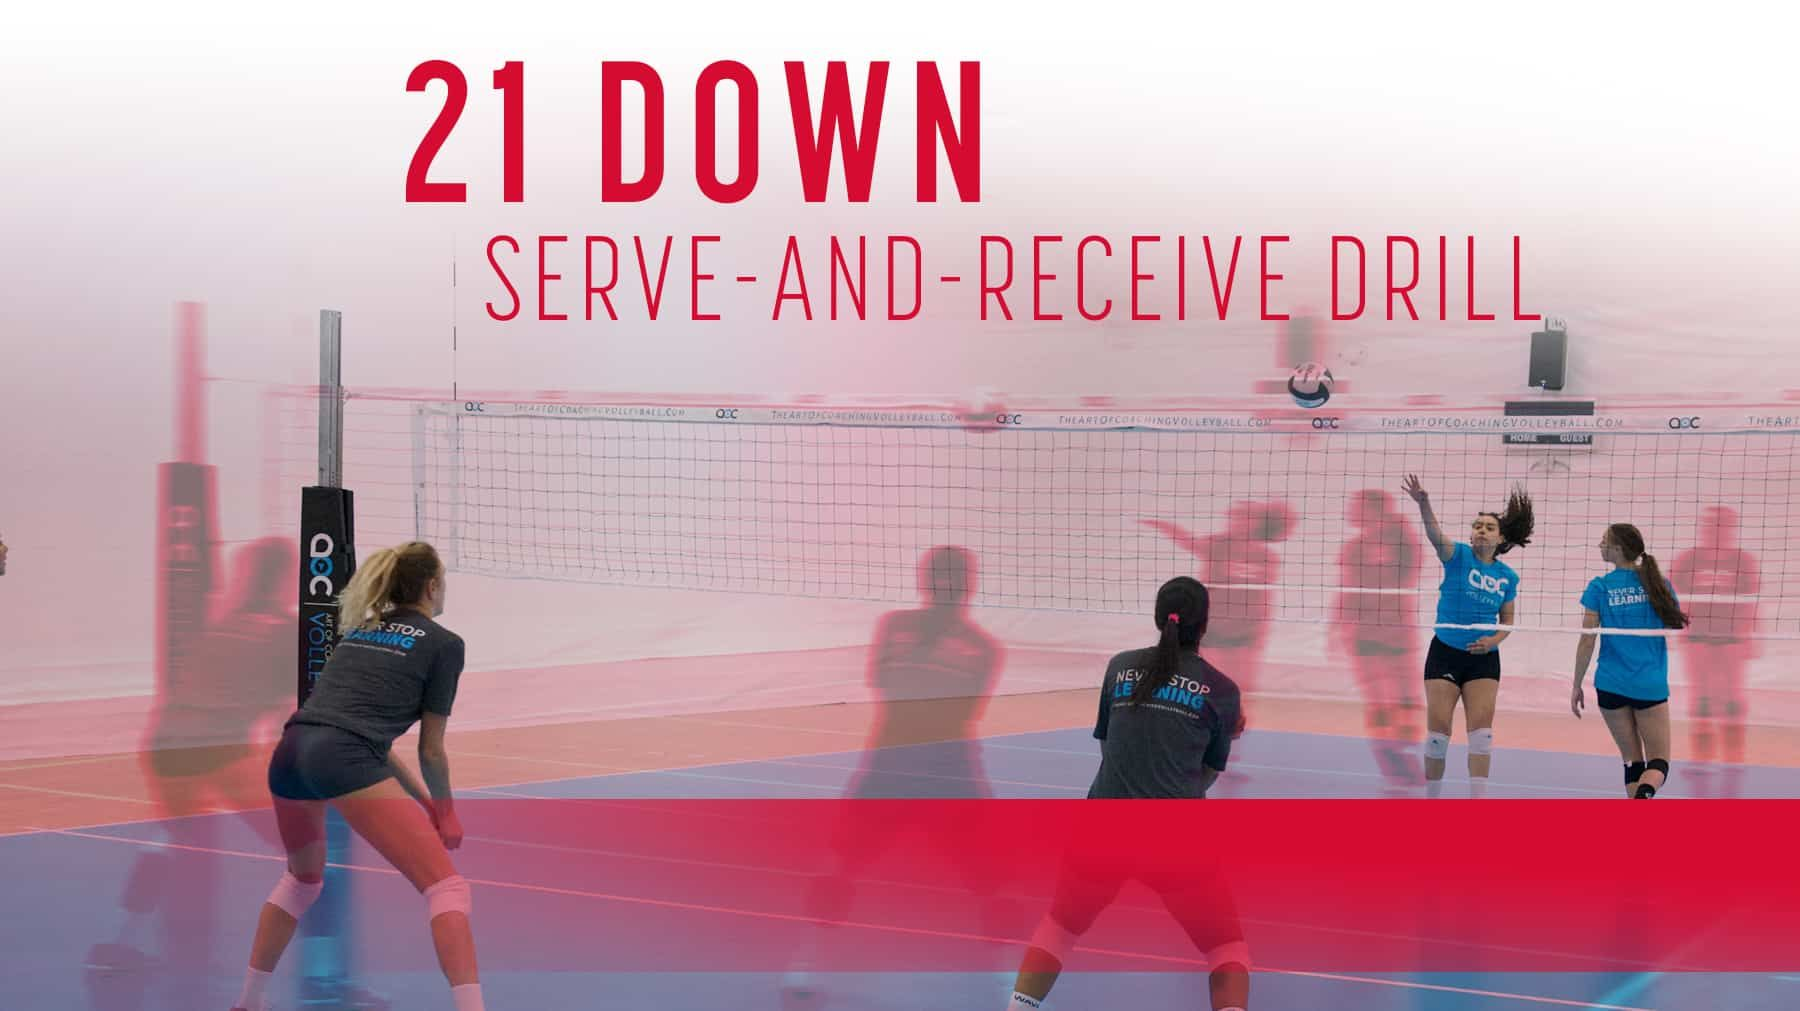 21 Down Serve And Receive Drill The Art Of Coaching Volleyball Coaching Volleyball Volleyball Skills Volleyball Workouts